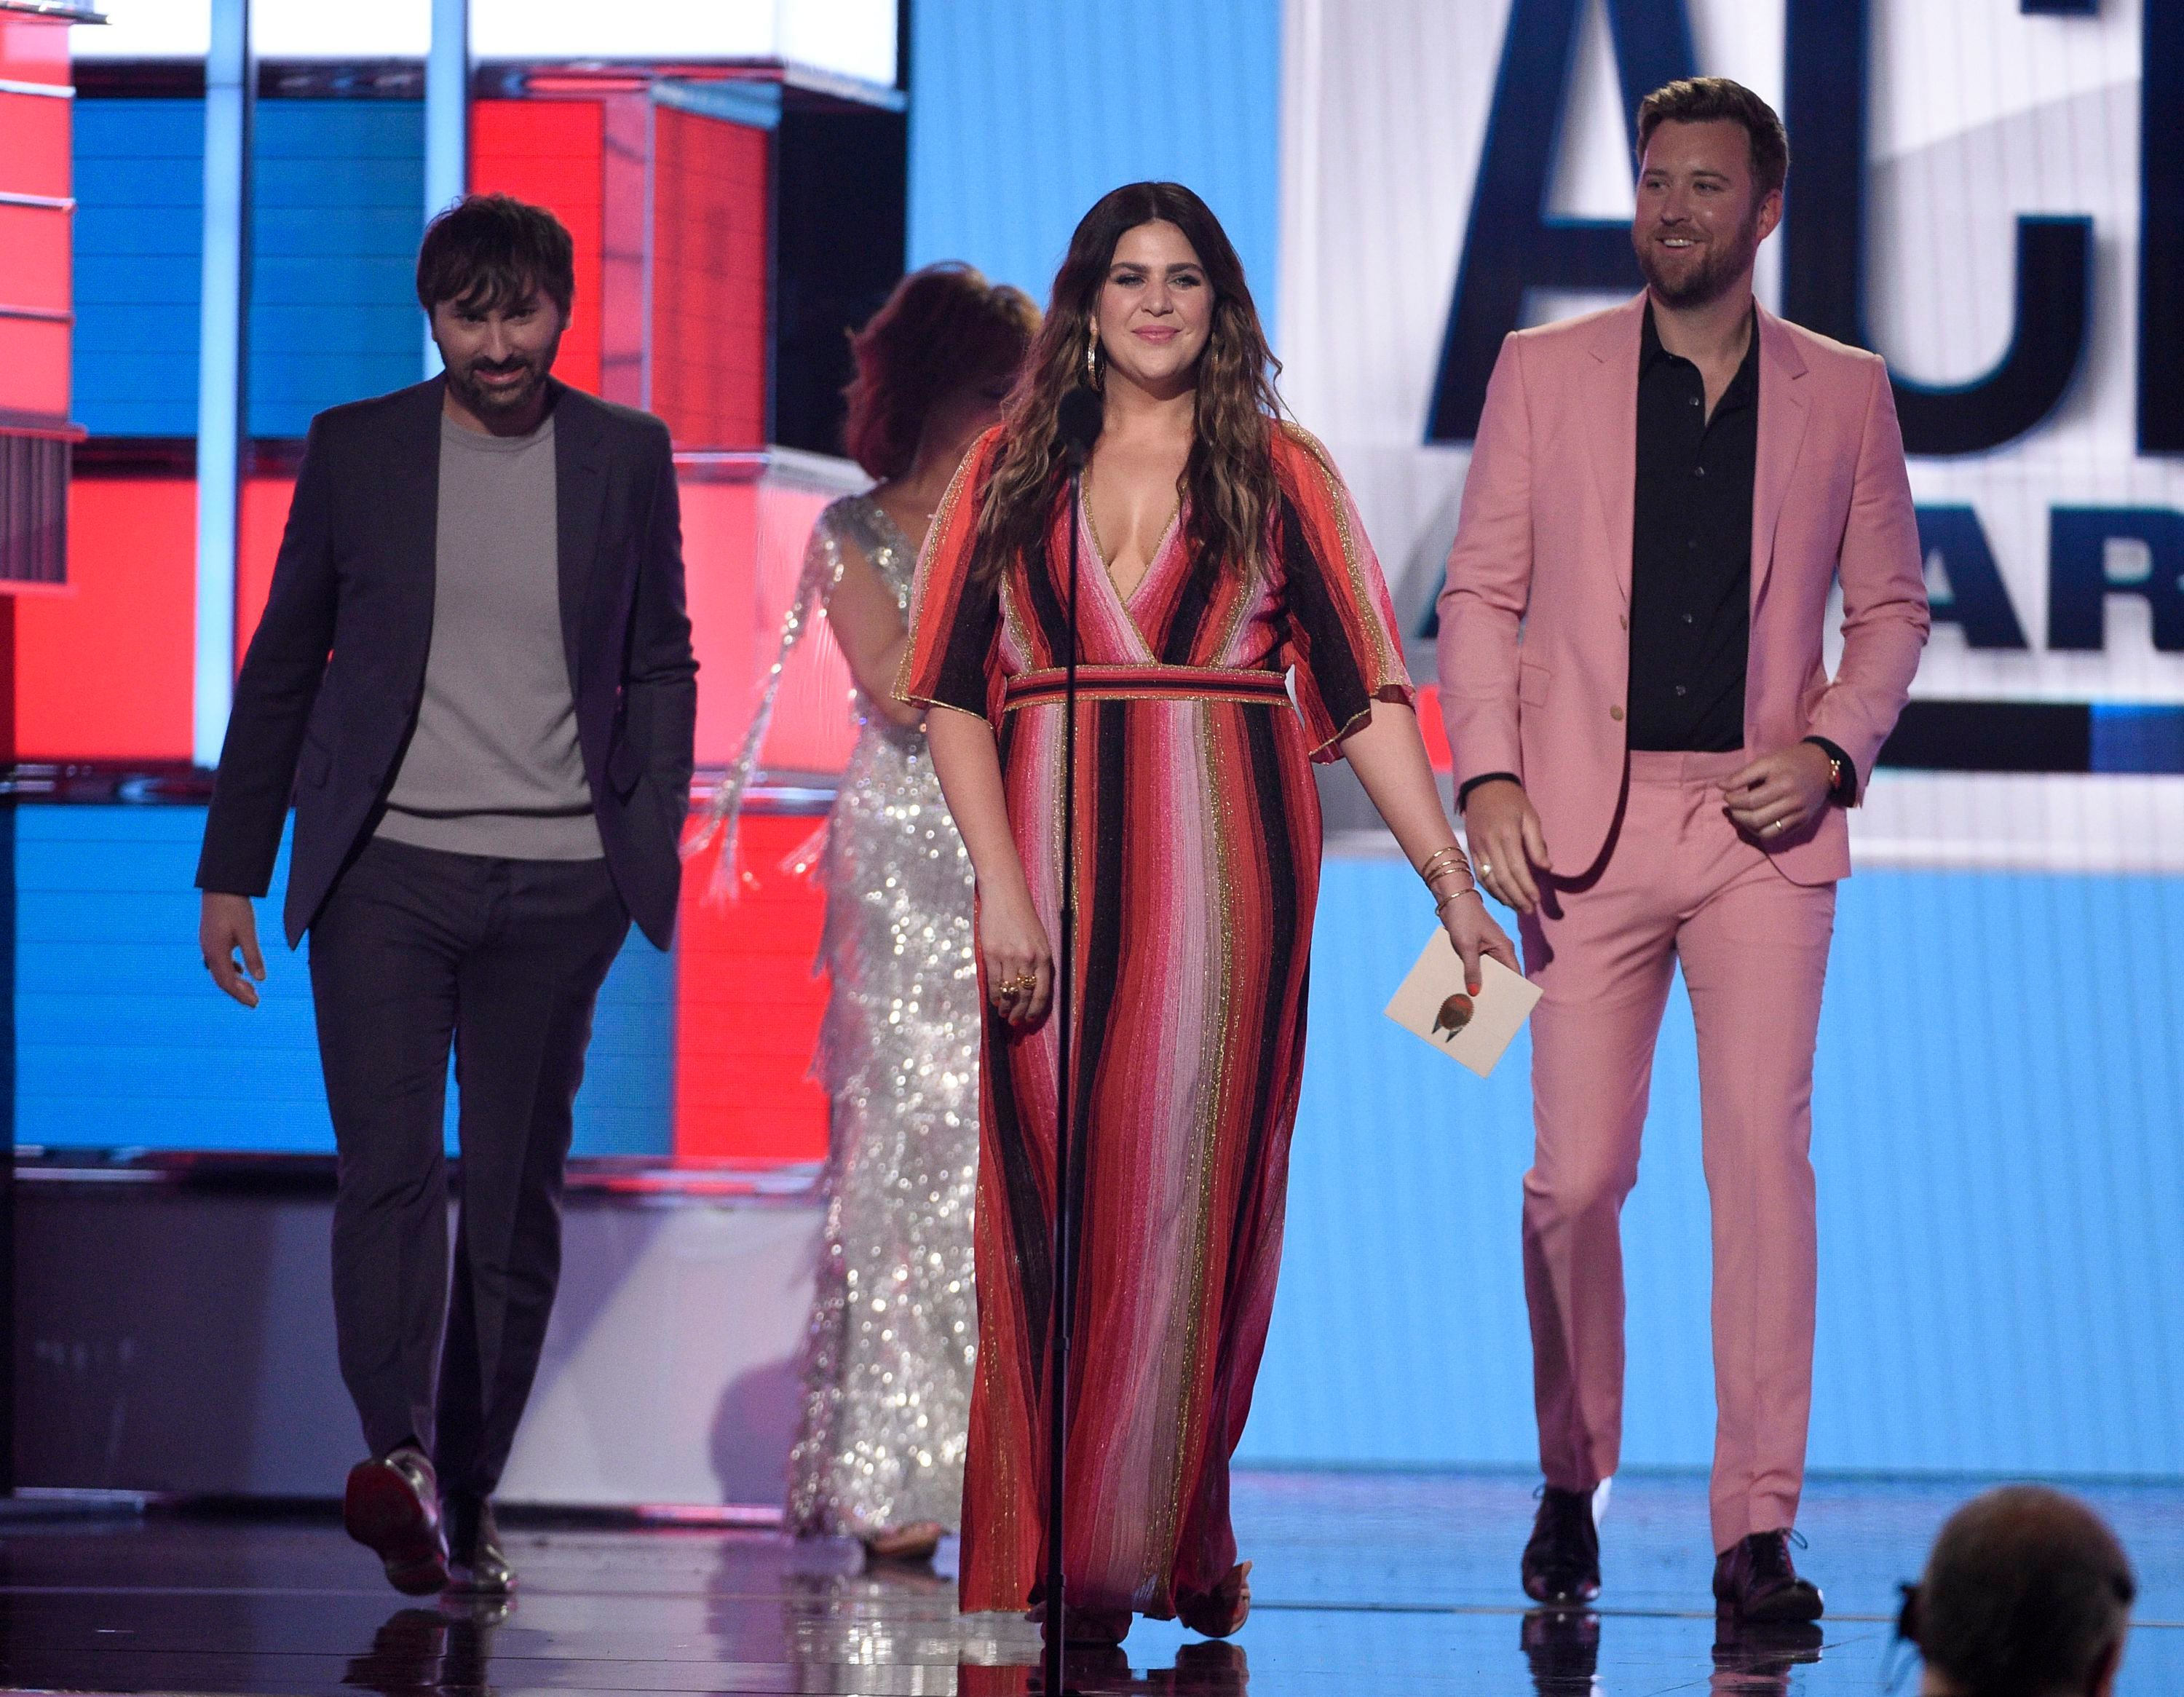 Dave Haywood, Hillary Scott and Charles Kelley, of Lady Antebellum, present the award for song of the year at the 54th annual Academy of Country Music Awards in Las Vegas on April 7, 2019.